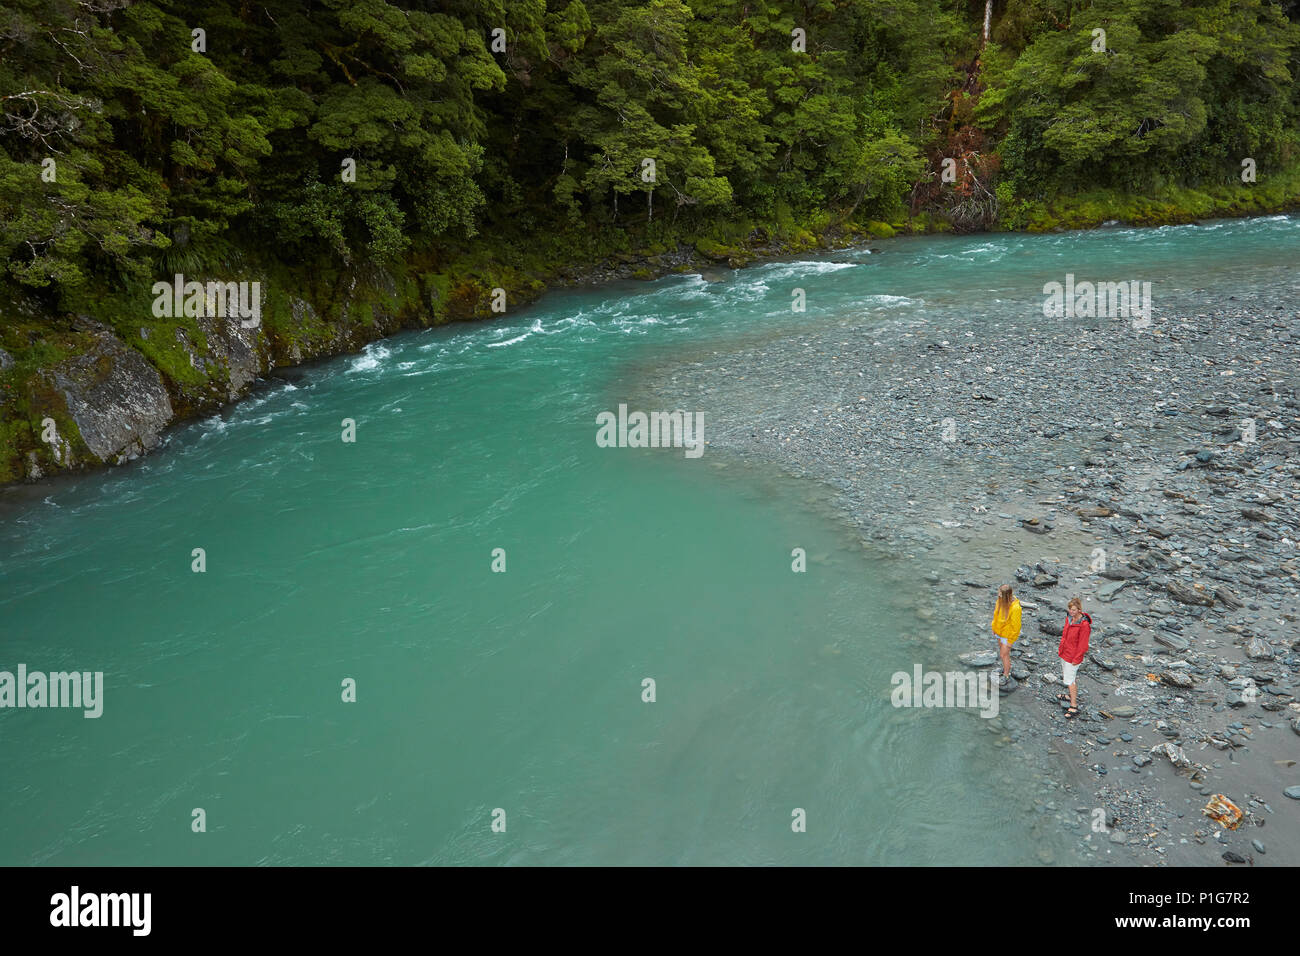 Tourists by Makarora River, Blue Pools, Mount Aspiring National Park, Haast Pass, near Makarora, Otago, South Island, New Zealand (model released) - Stock Image